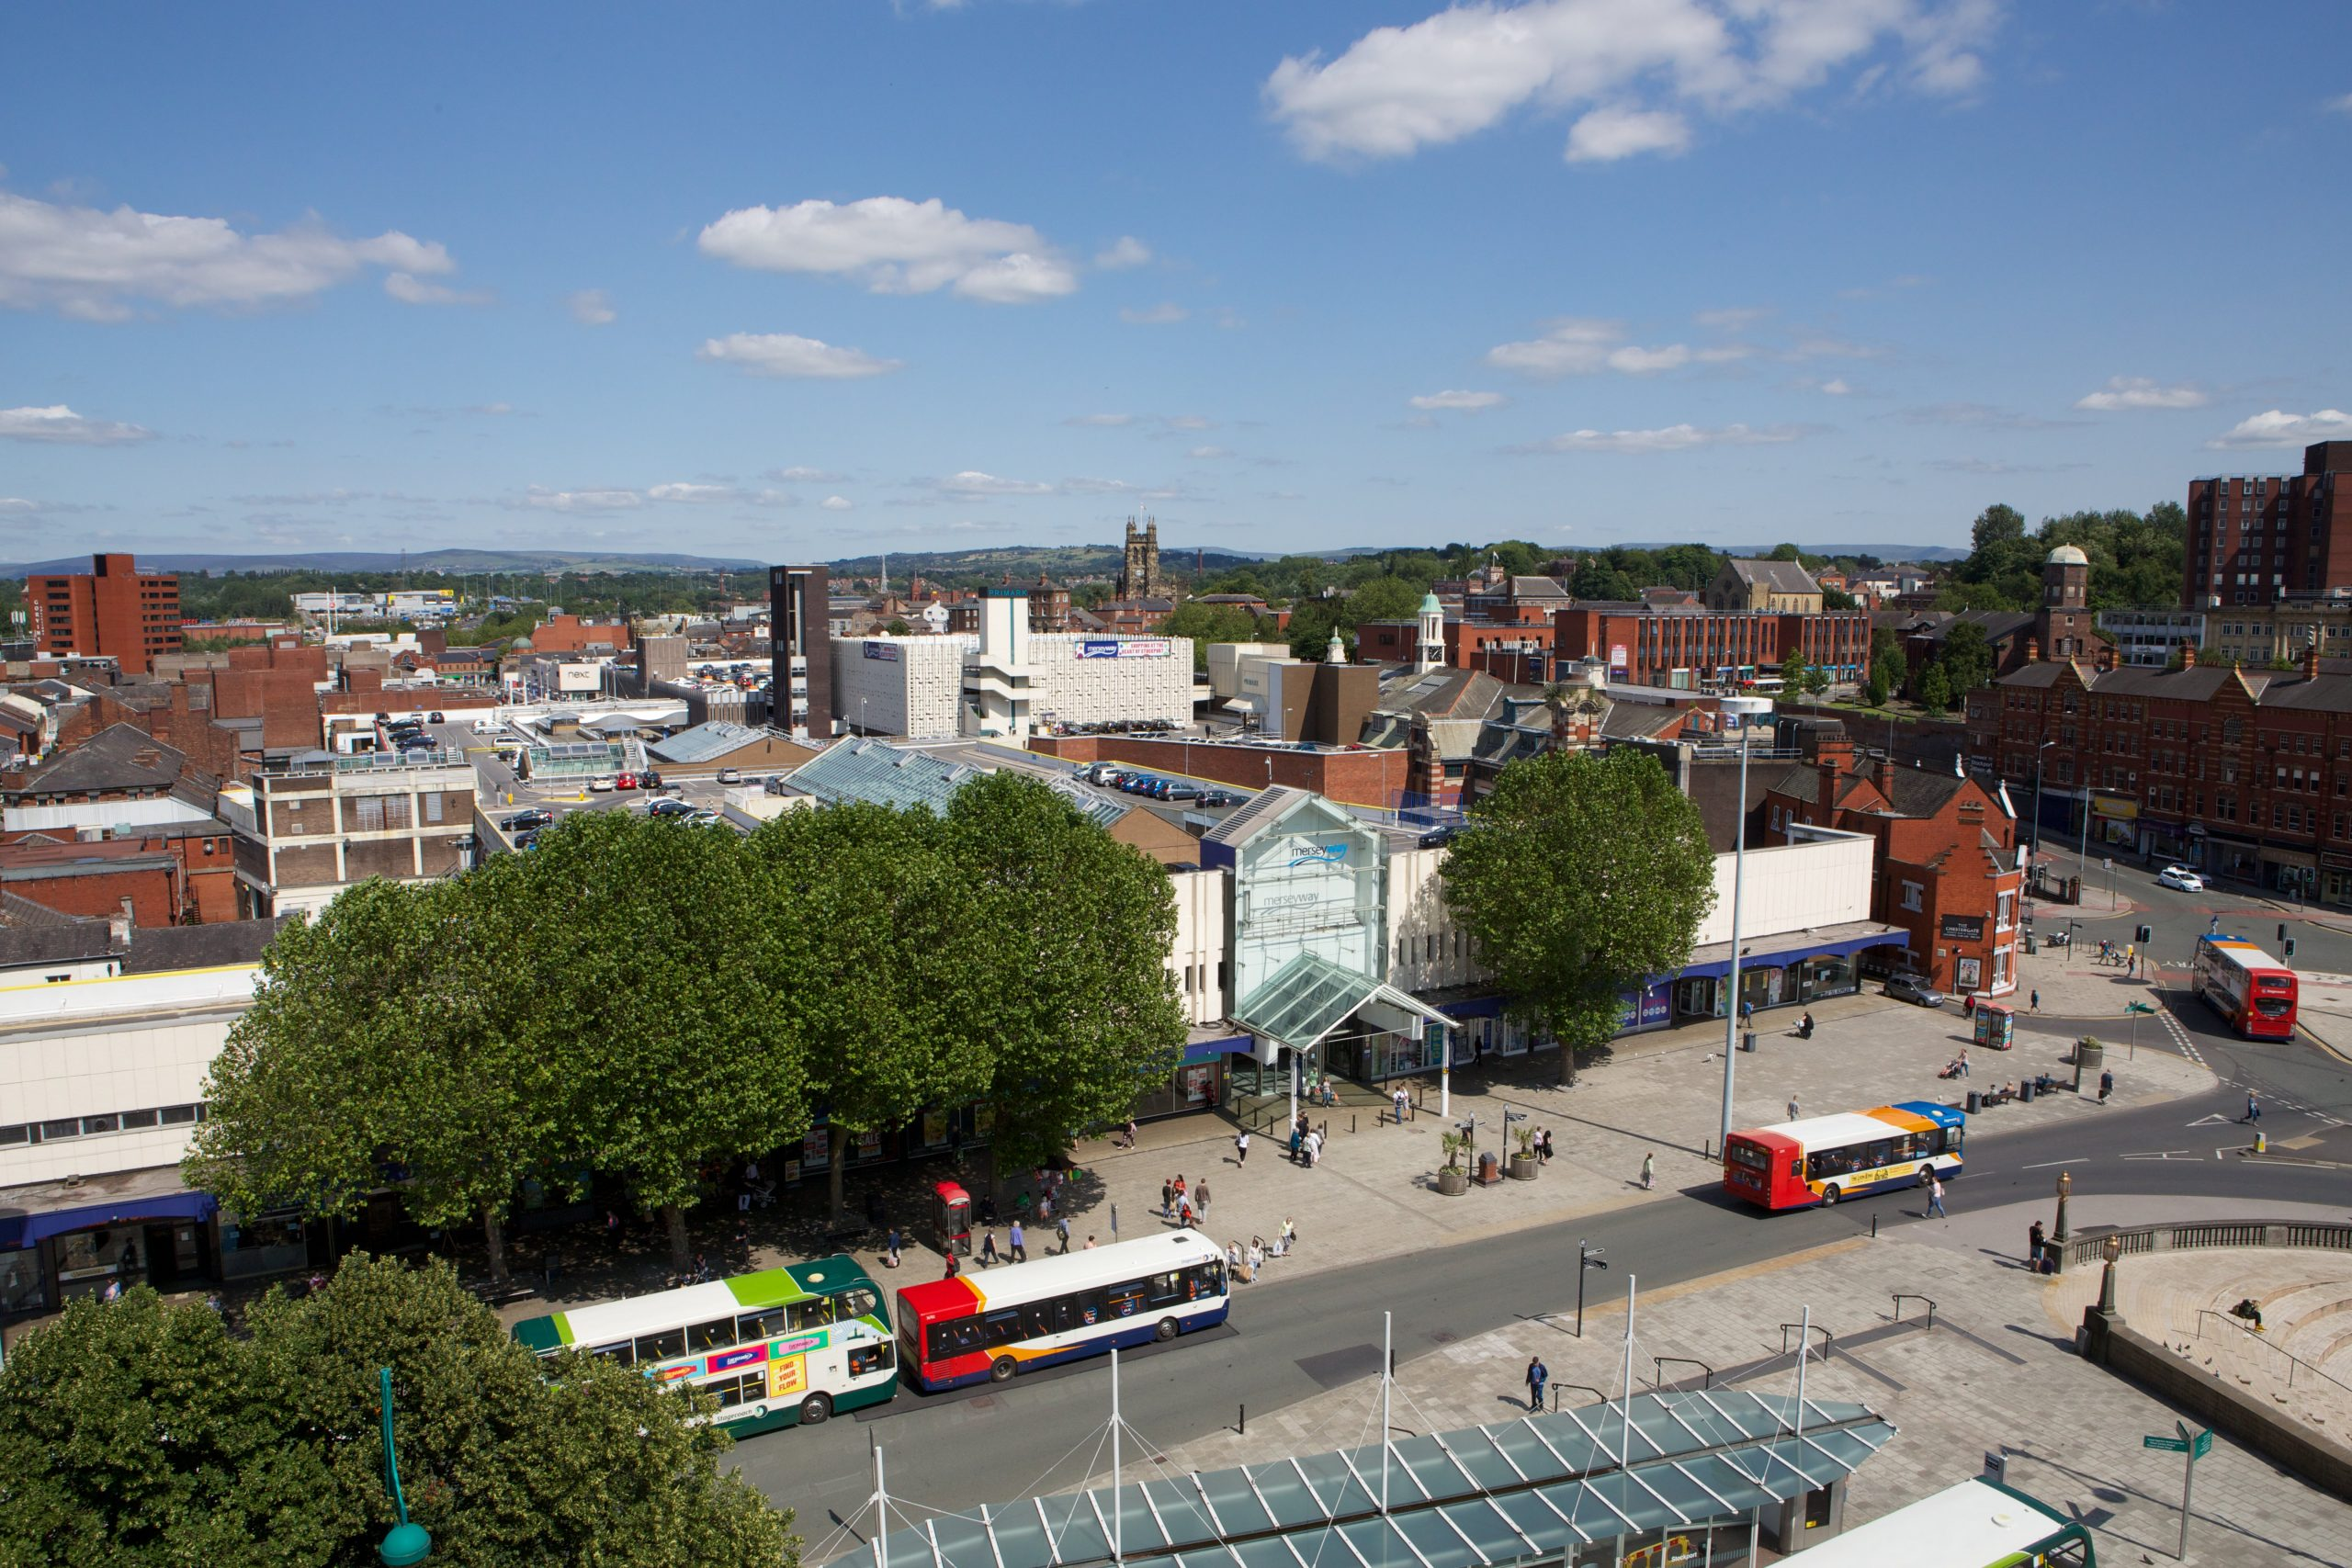 Stockport town centre & Merseyway Shopping Centre